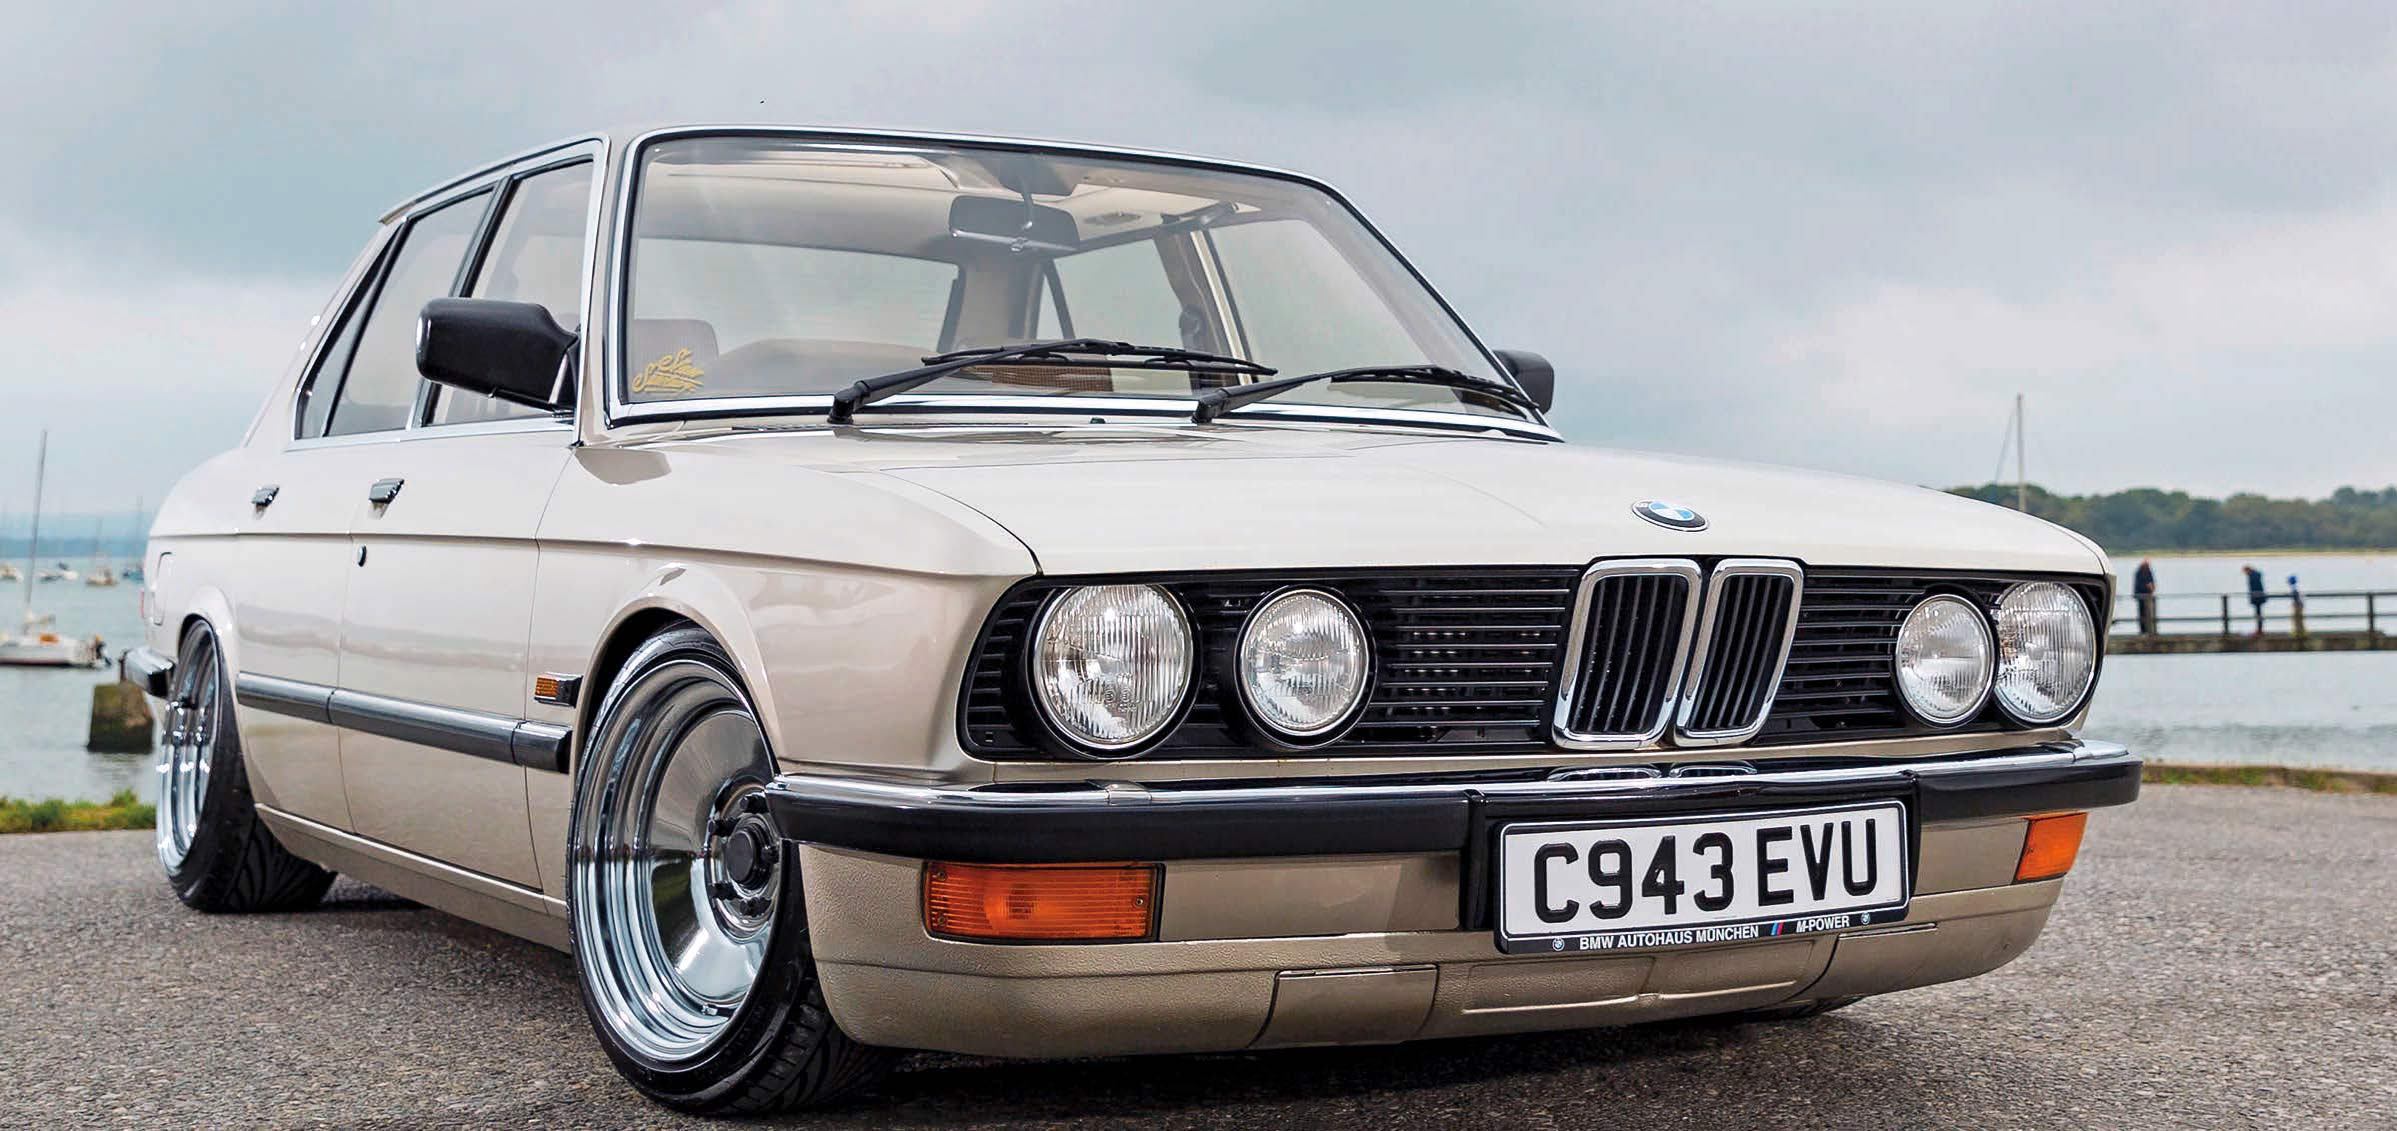 BMW E28 M52 2.8-engined - Drive-My Blogs